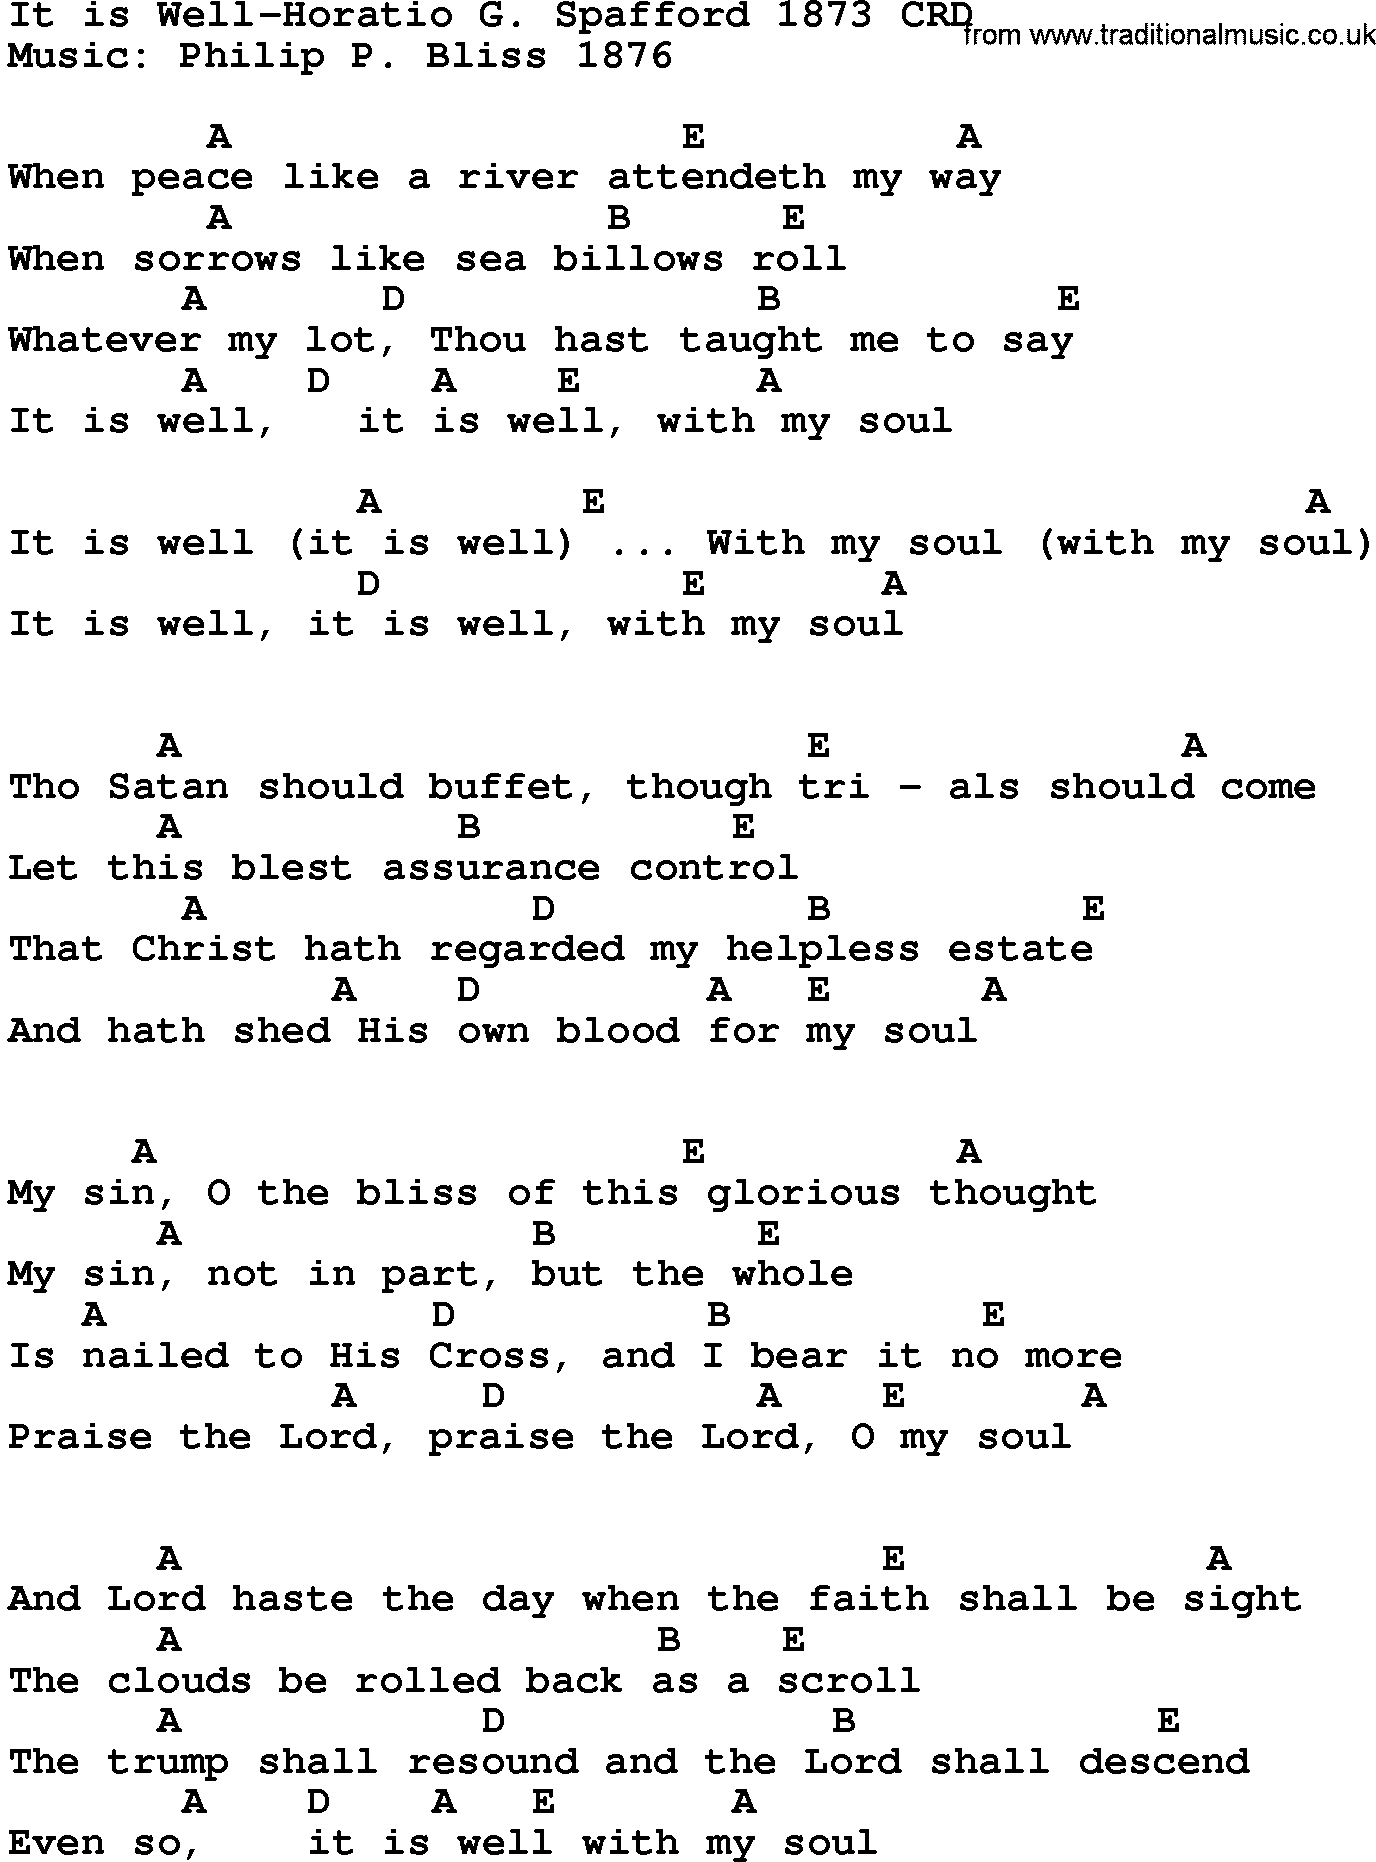 Gospel Song It Is Well Horatio G Spafford 15, lyrics and chords.